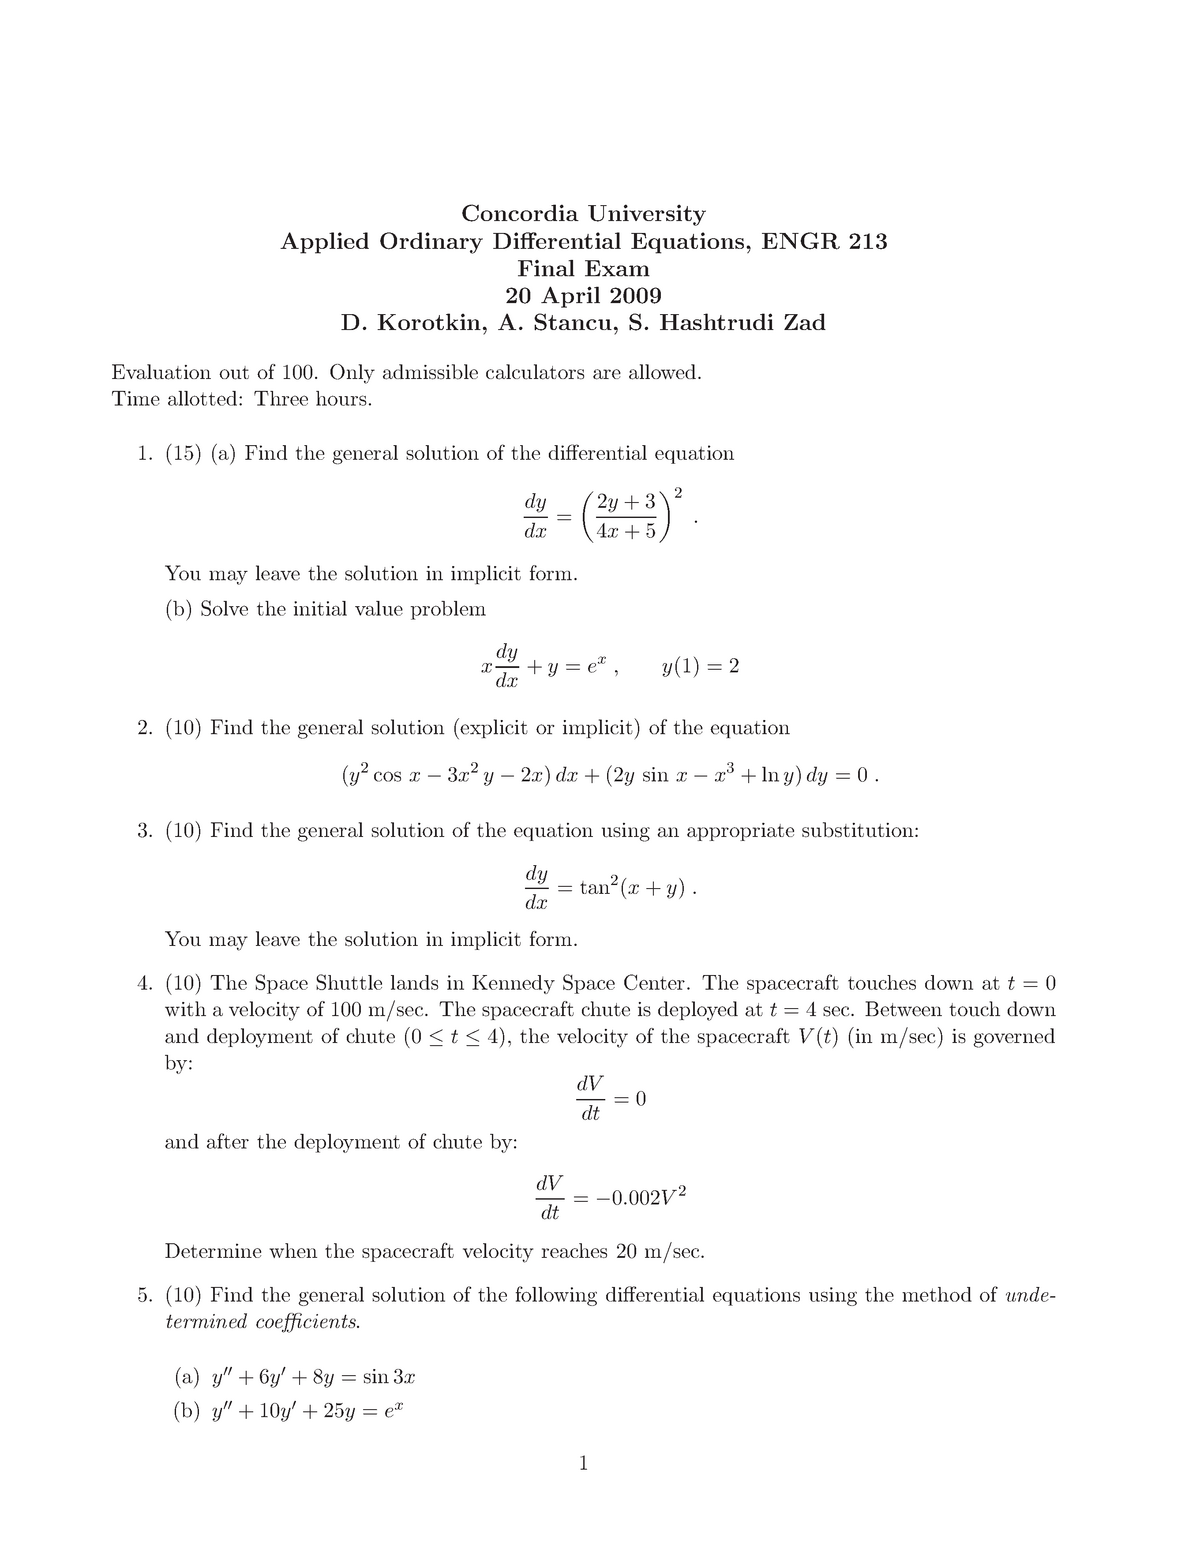 Exam 2009 - ENGR 213: Applied Ordinary Differential